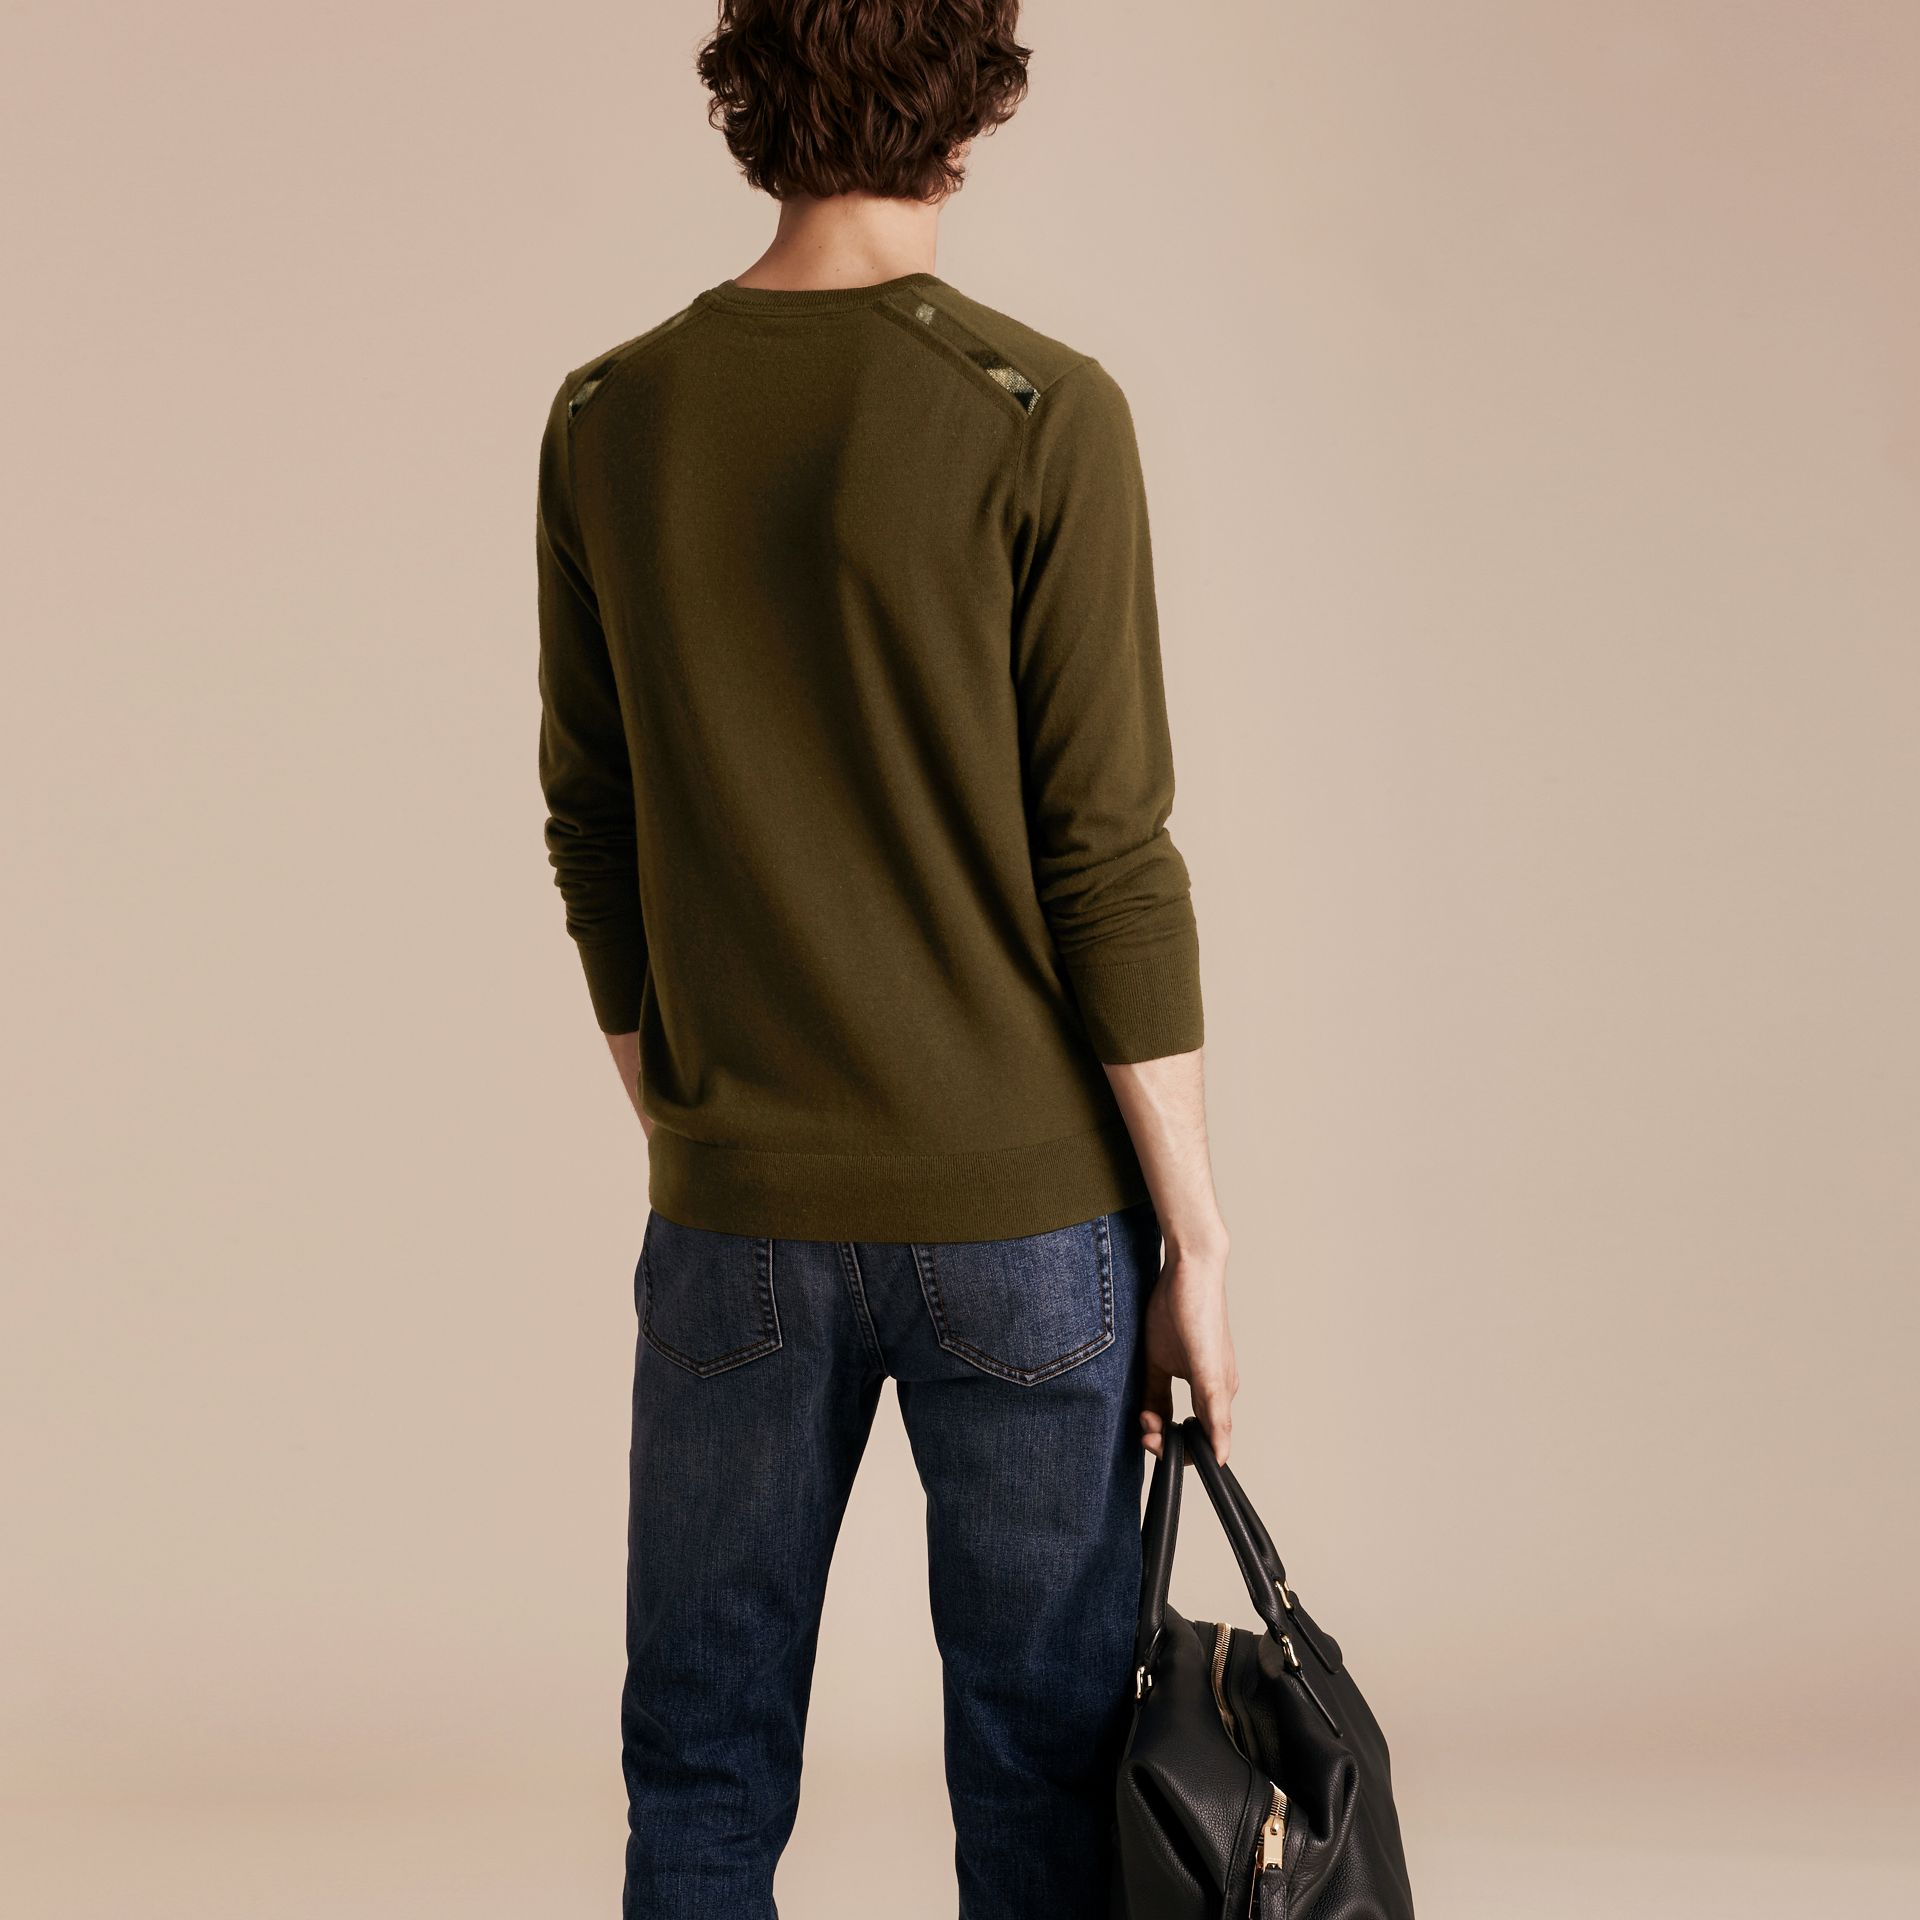 Military olive Lightweight Crew Neck Cashmere Sweater with Check Trim Military Olive - gallery image 3